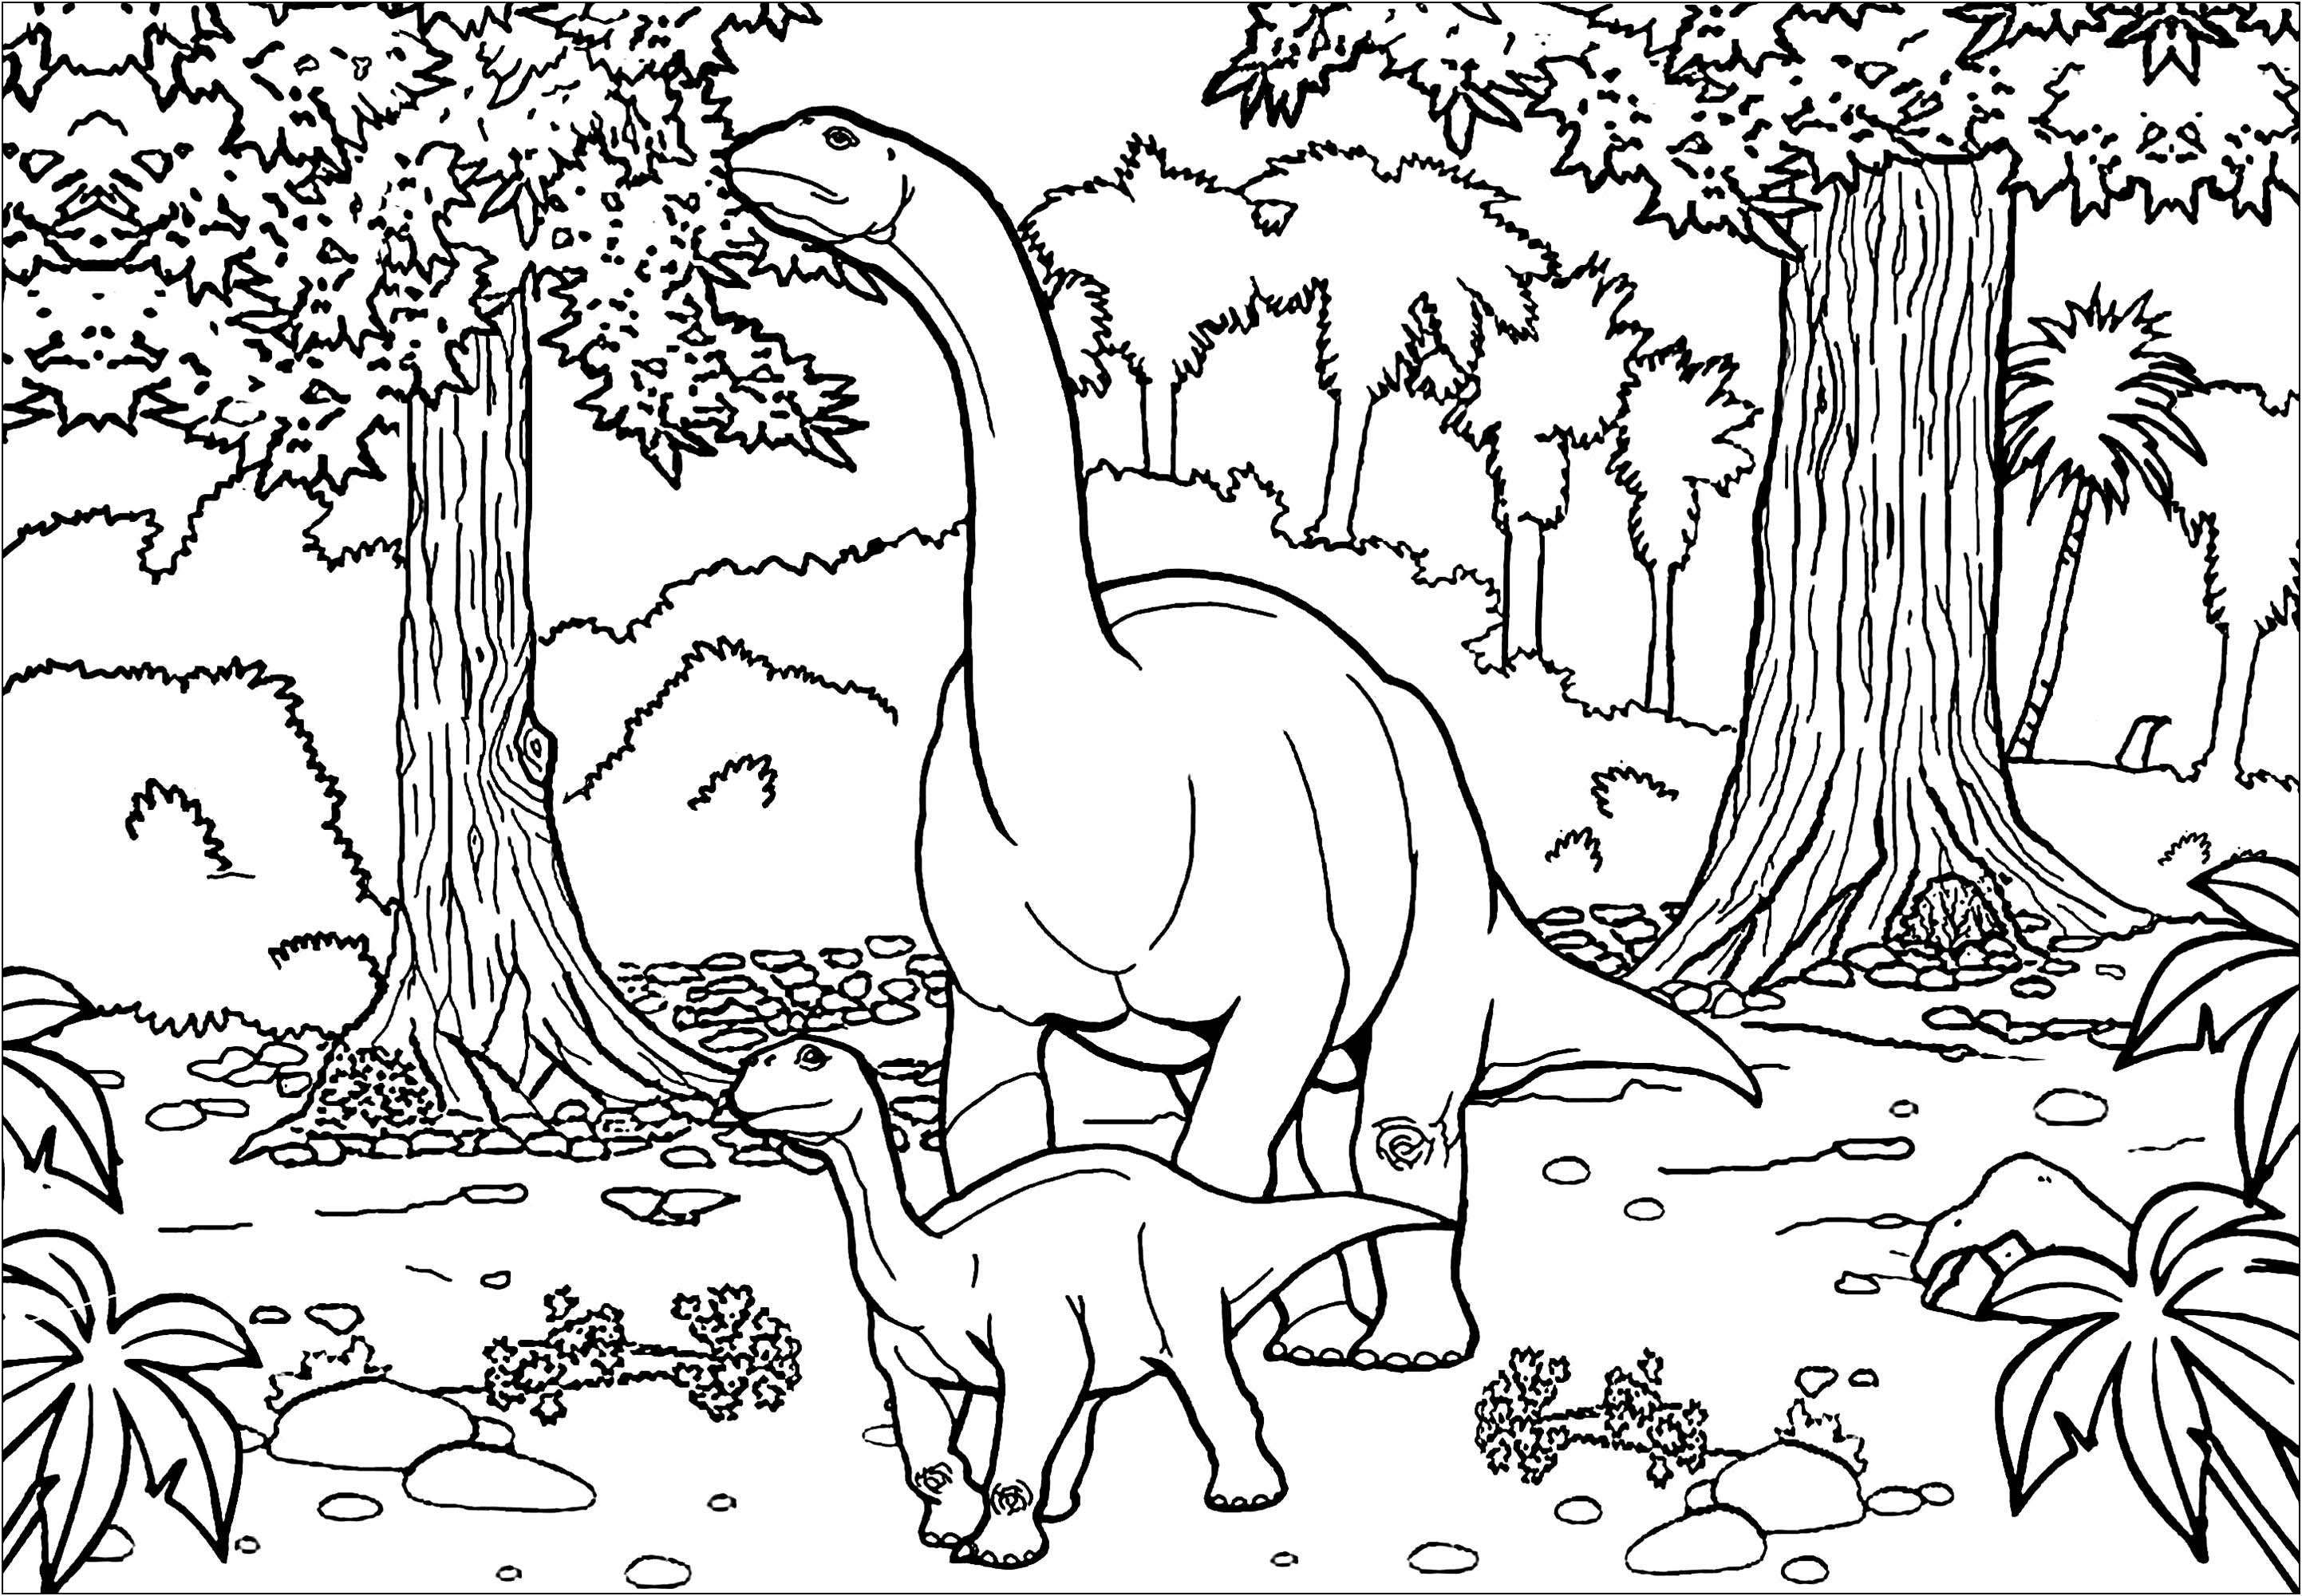 Two Diplodocus : This genus of dinosaurs lived in what is now mid-western North America at the end of the Jurassic period.